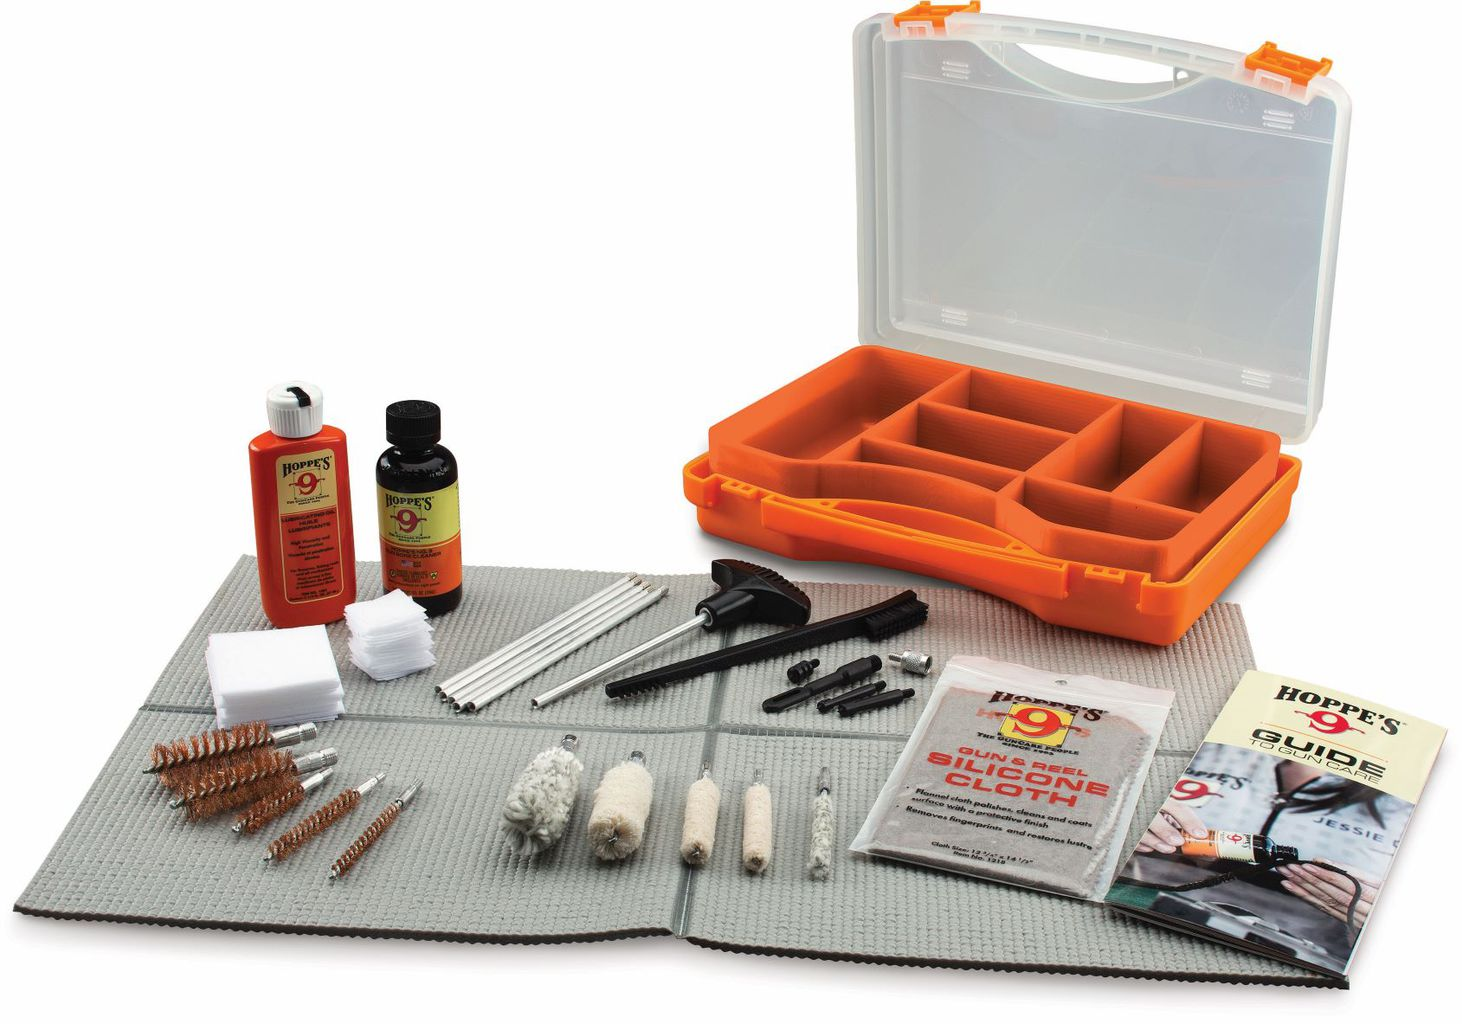 Hoppe's Universal Cleaning Kit